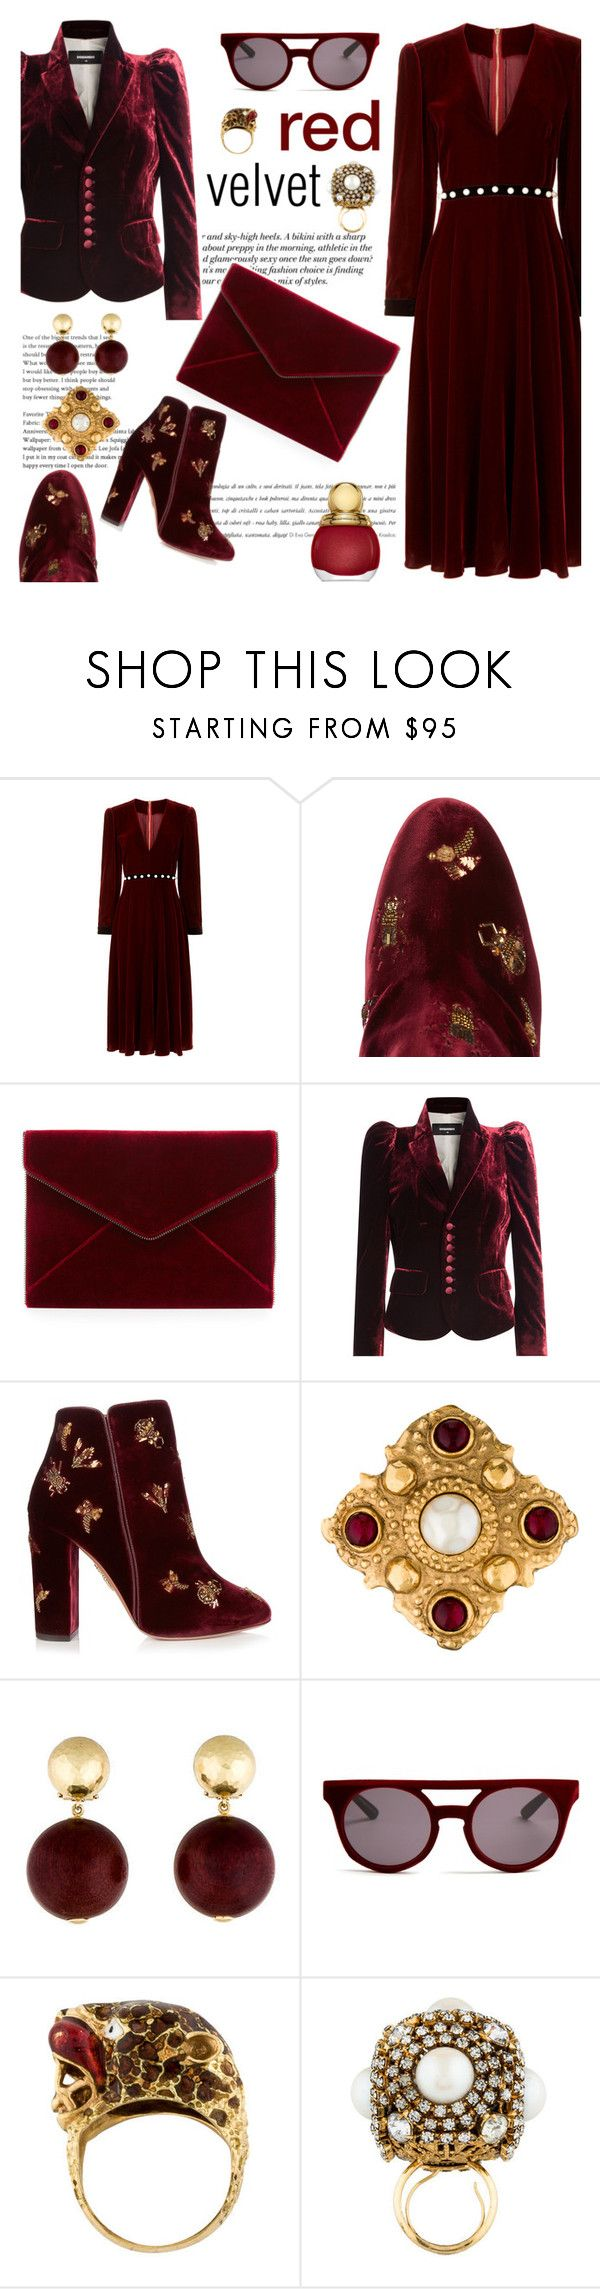 """""""Red velvet"""" by pensivepeacock ❤ liked on Polyvore featuring Philosophy di Lorenzo Serafini, H&M, Aquazzura, Rebecca Minkoff, Dsquared2, Chanel, Italia Independent, Erickson Beamon and Christian Dior"""